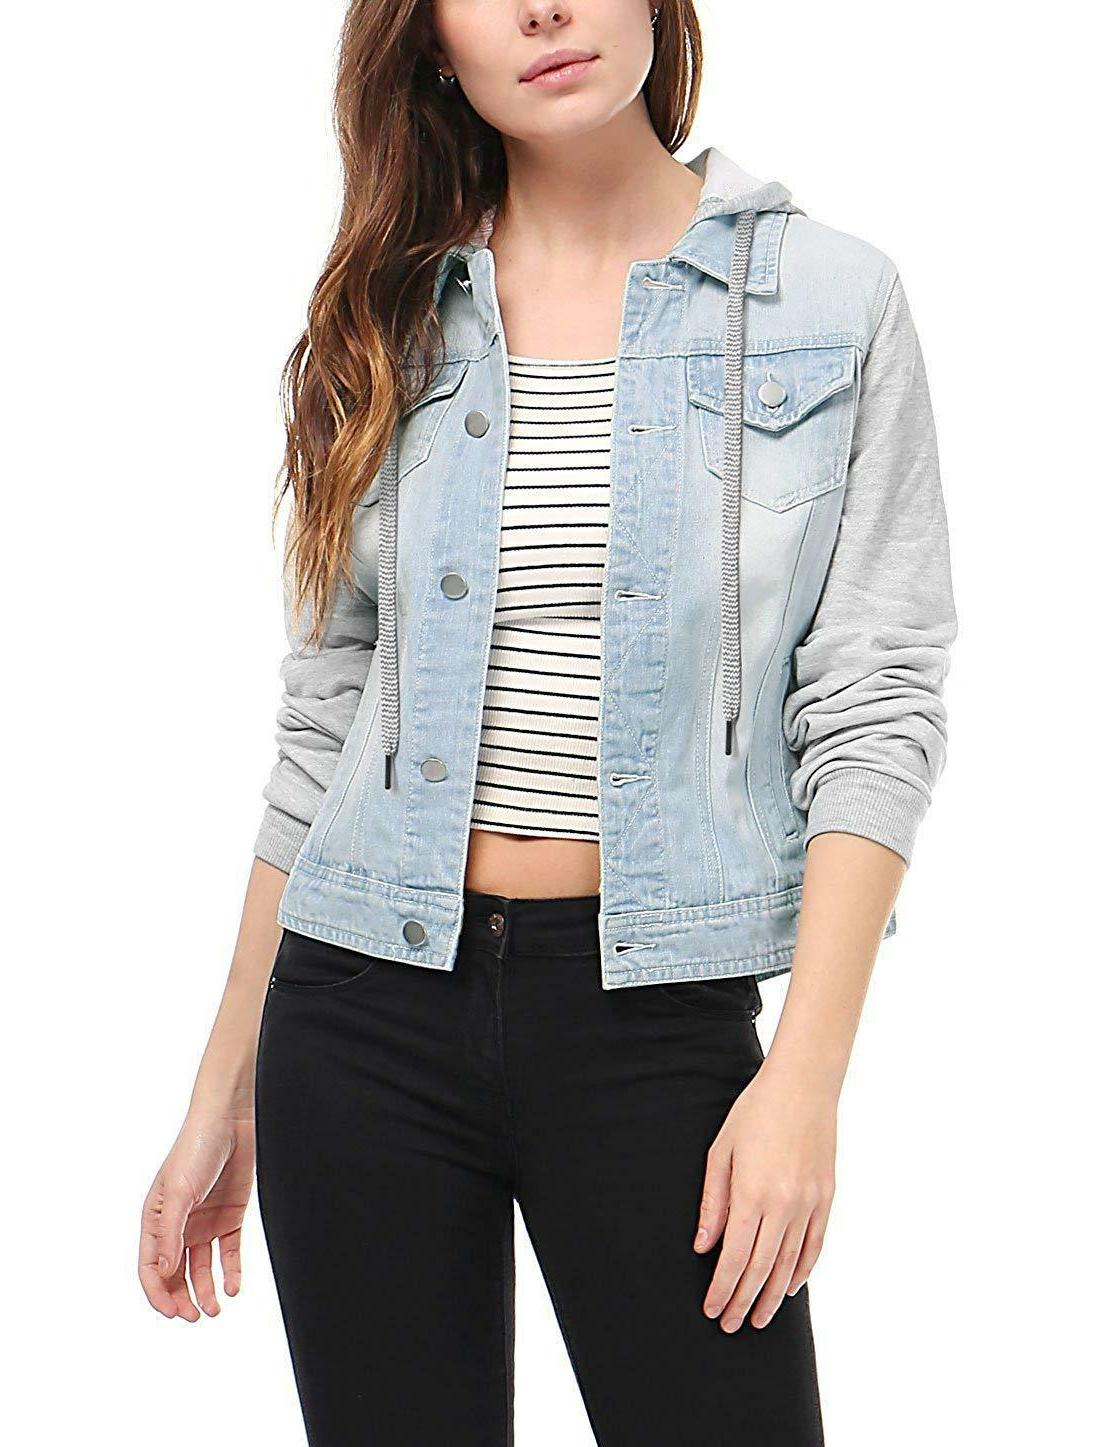 outerwear Fas Layered Drawstring Hood Denim Jacket Pockets